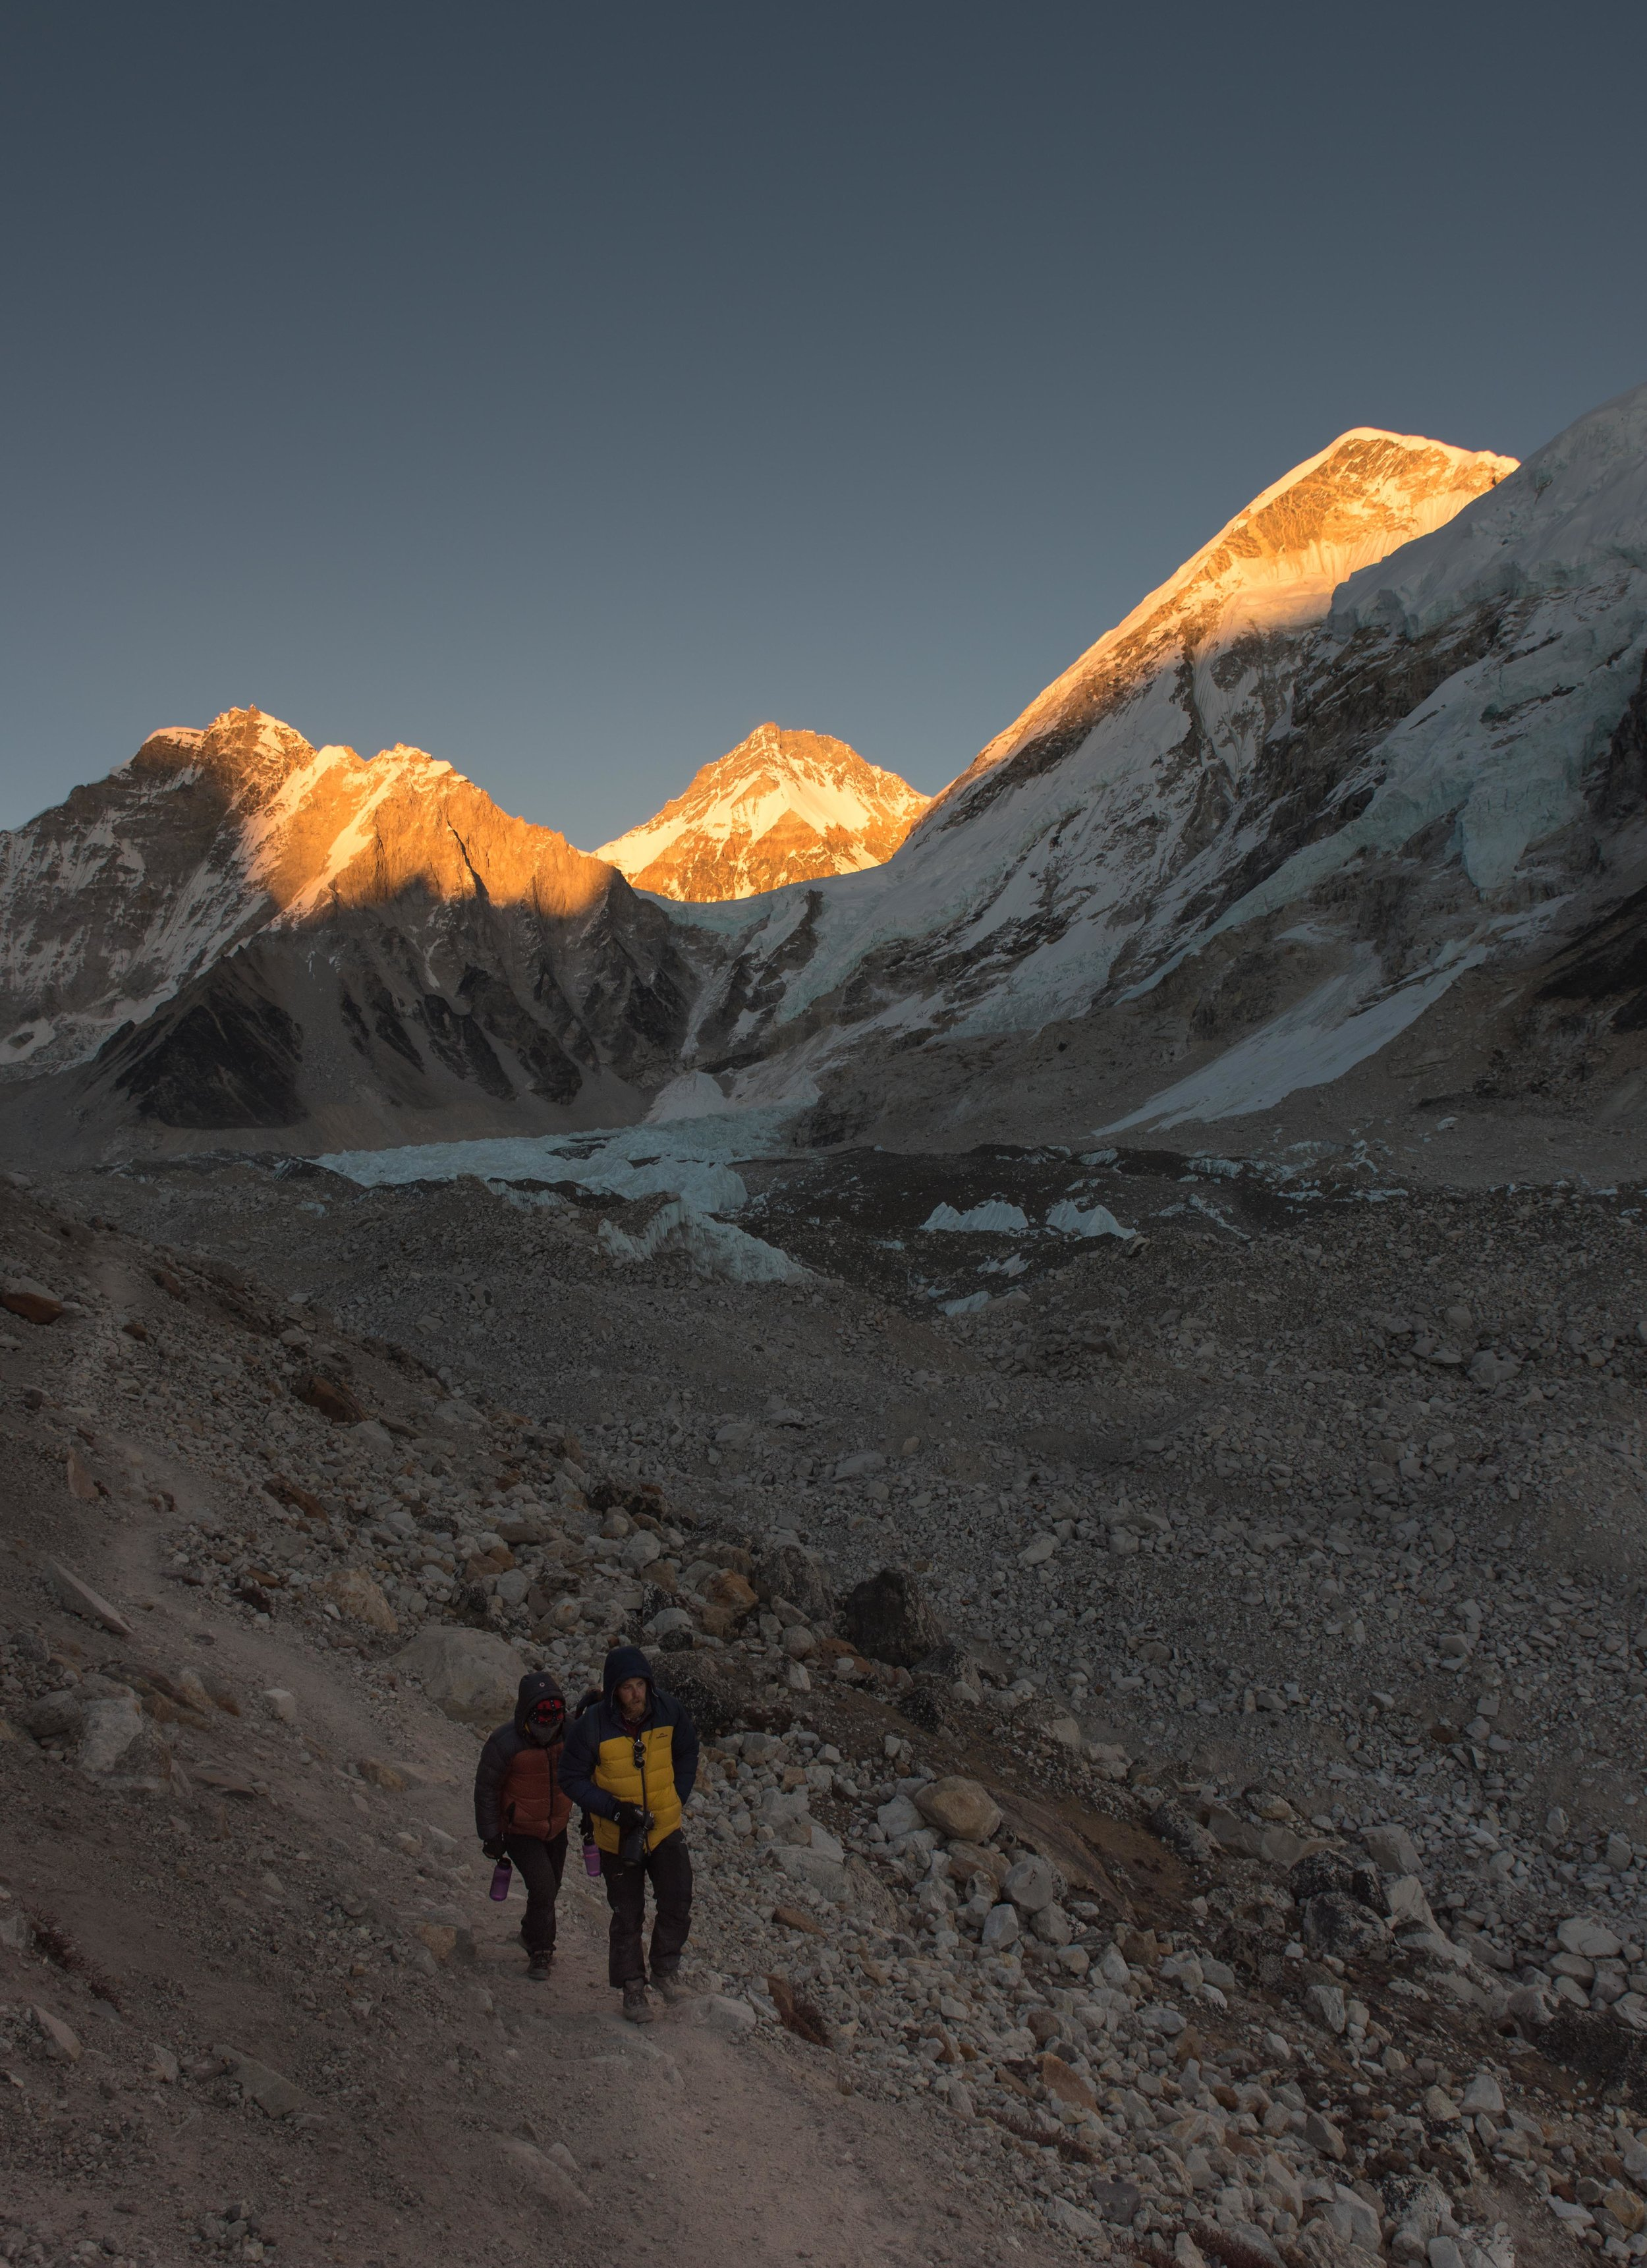 The slow hike back from Base Camp as sun sets in the mountains PC @ryangraymedia